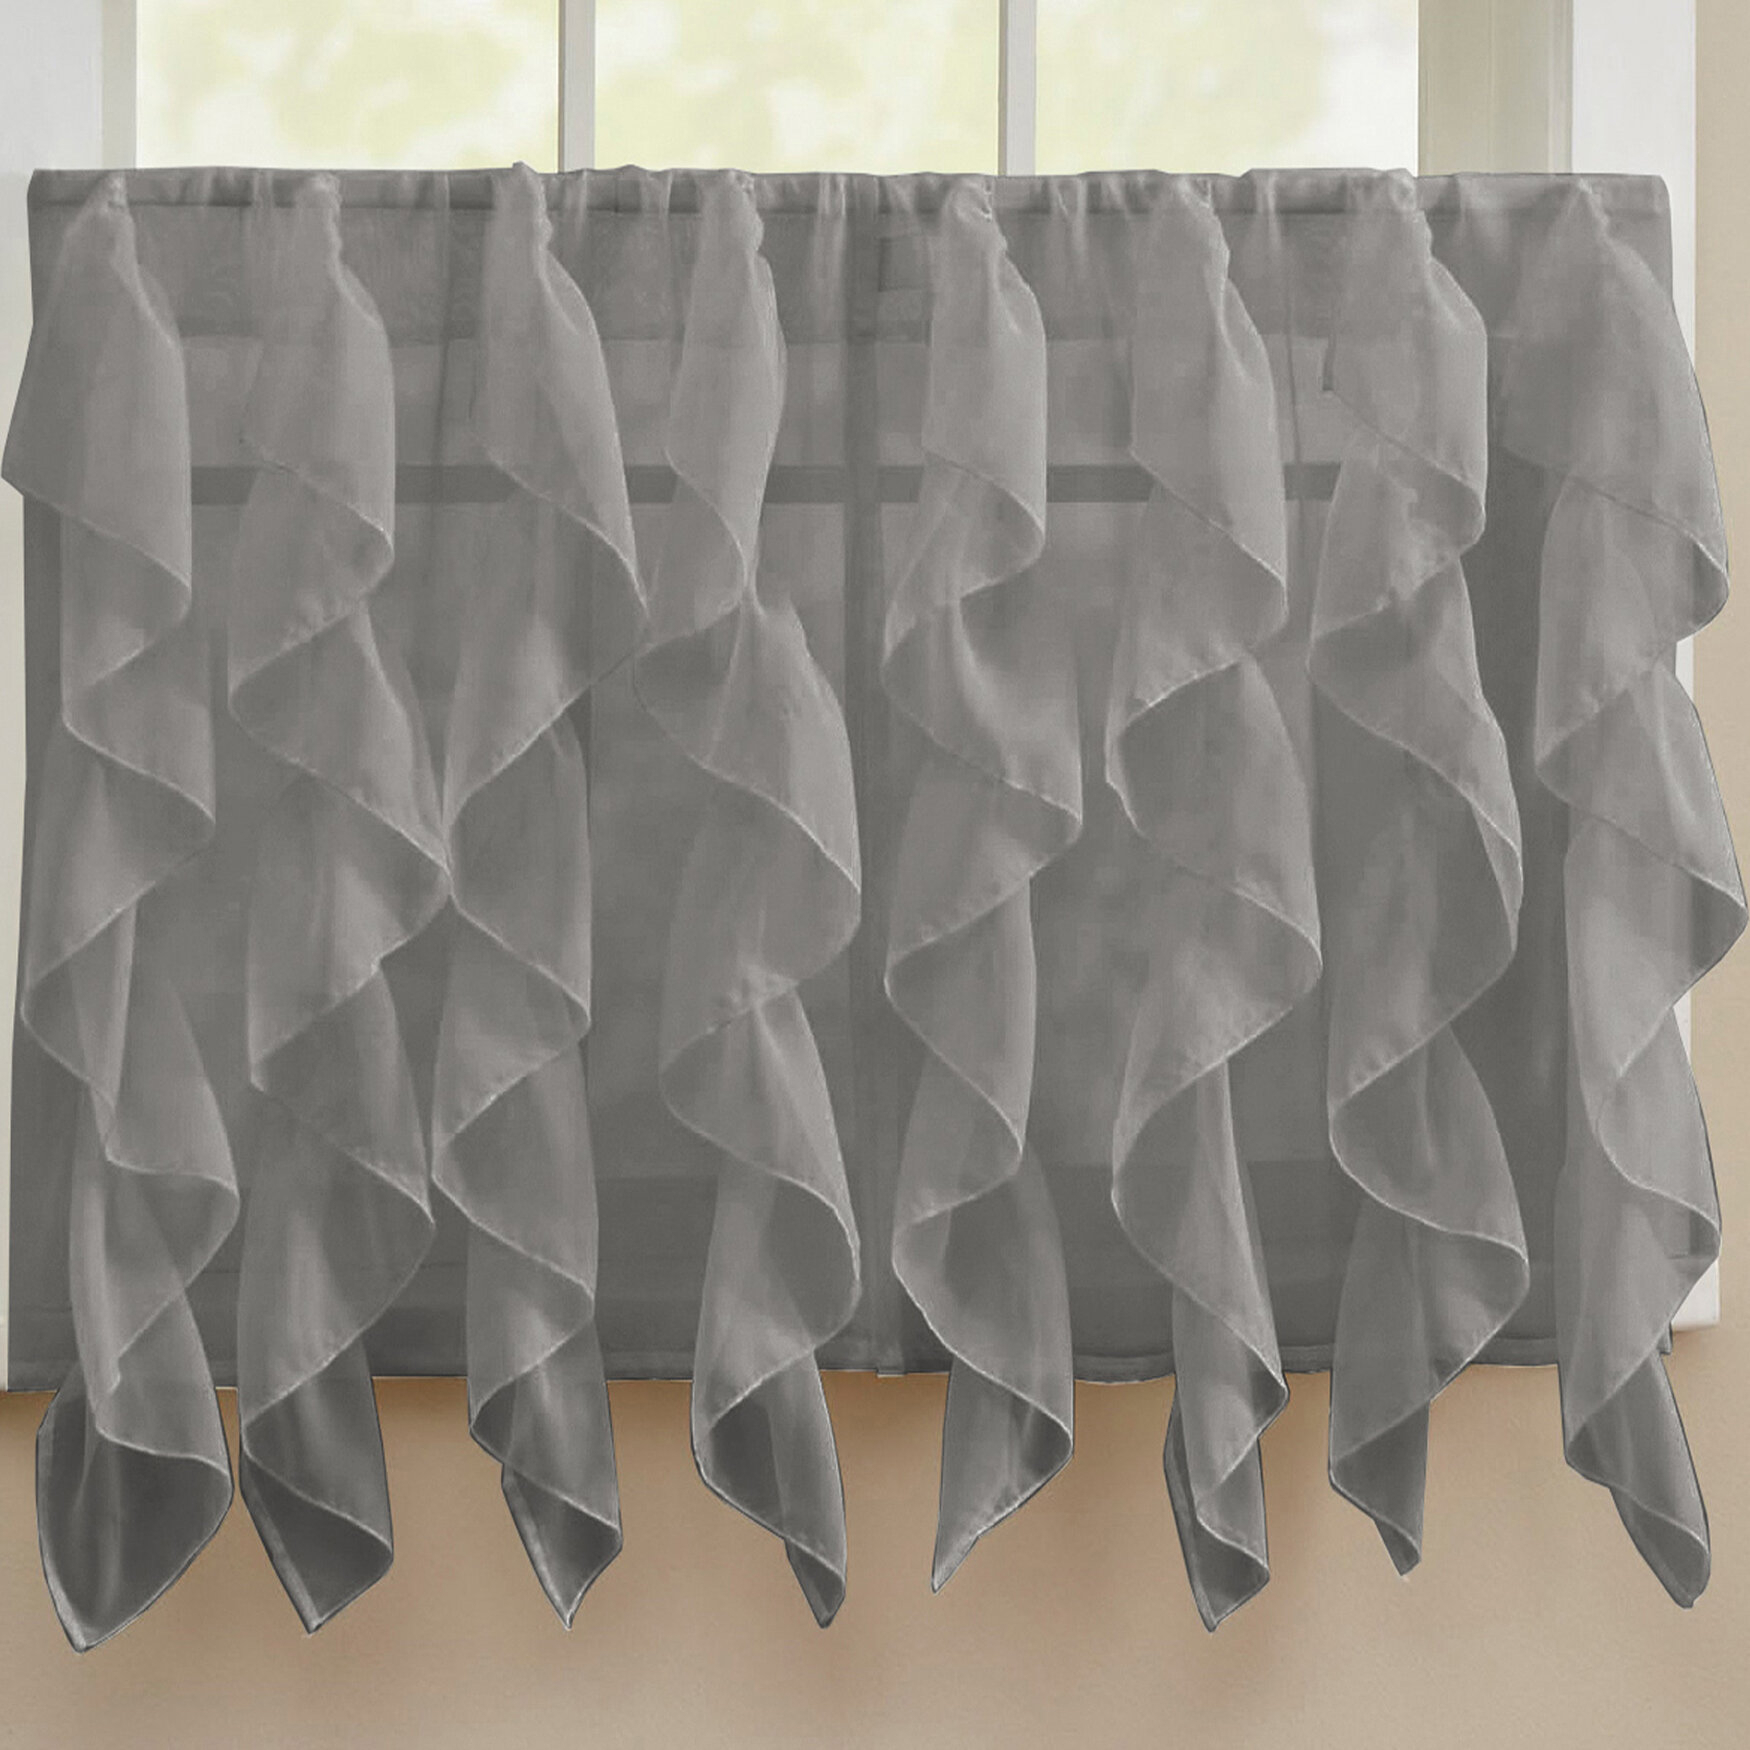 Fulgham Chic Sheer Voile Vertical Cafe Curtain throughout Maize Vertical Ruffled Waterfall Valance And Curtain Tiers (Image 6 of 20)